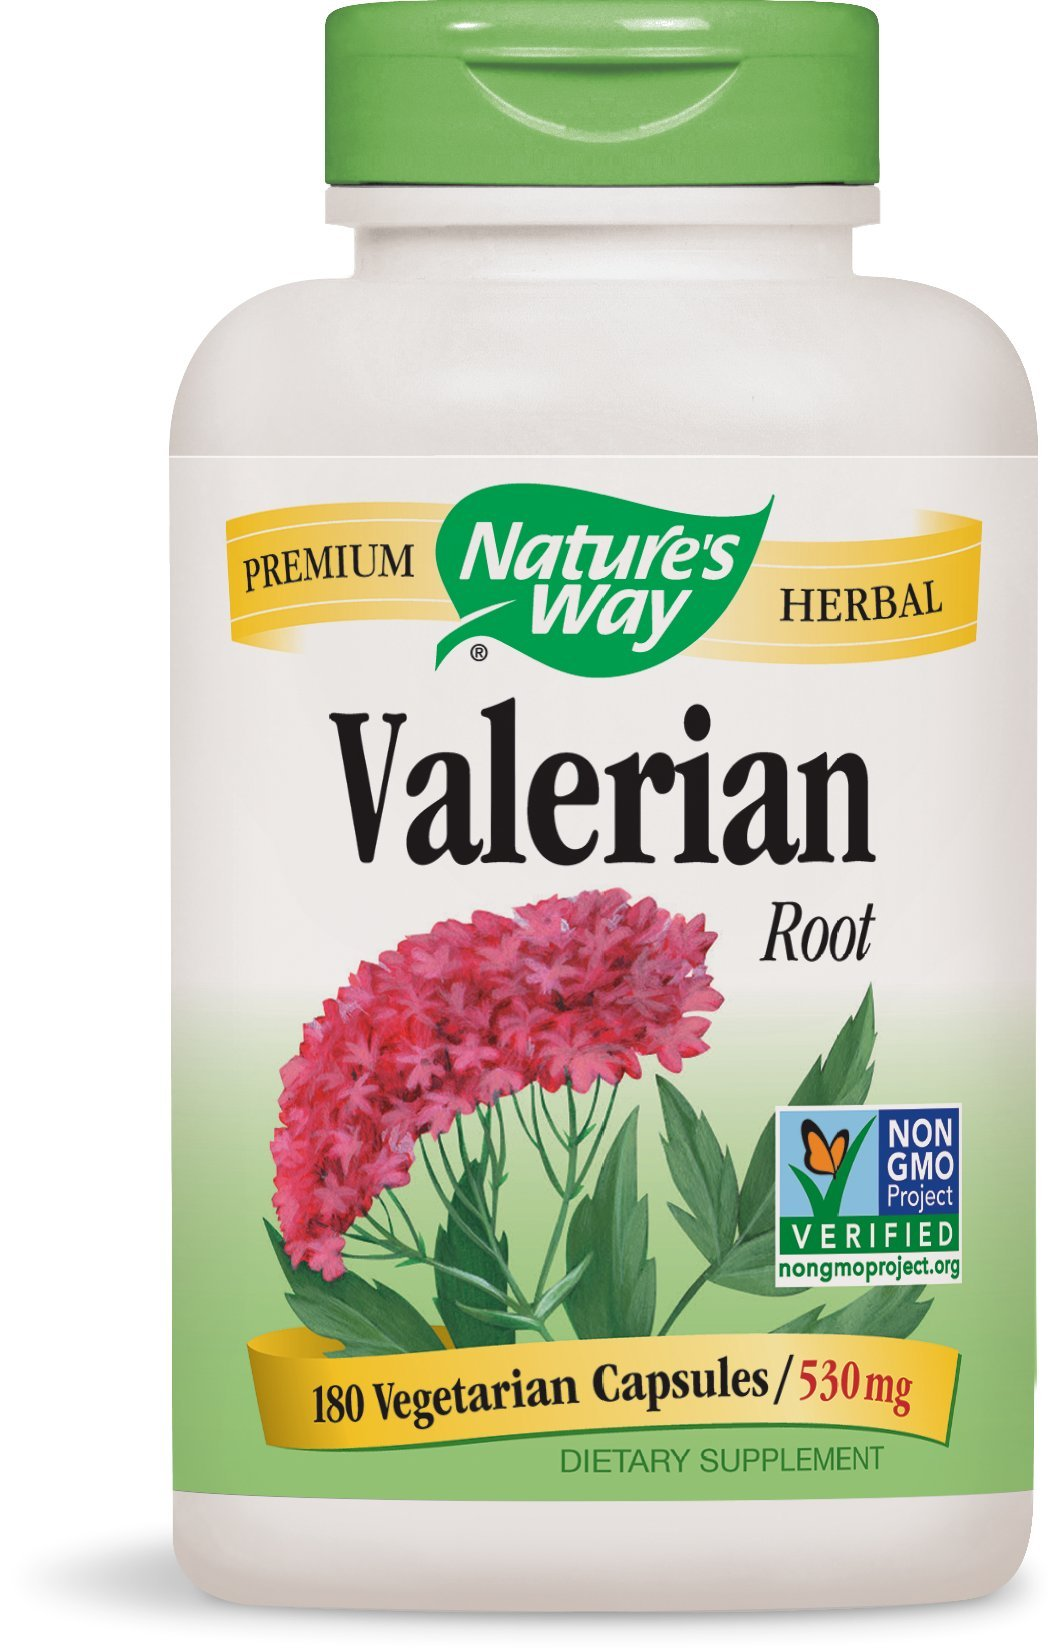 Nature's Way Valerian Root 530mg, 180 Capsules (Pack of 2)